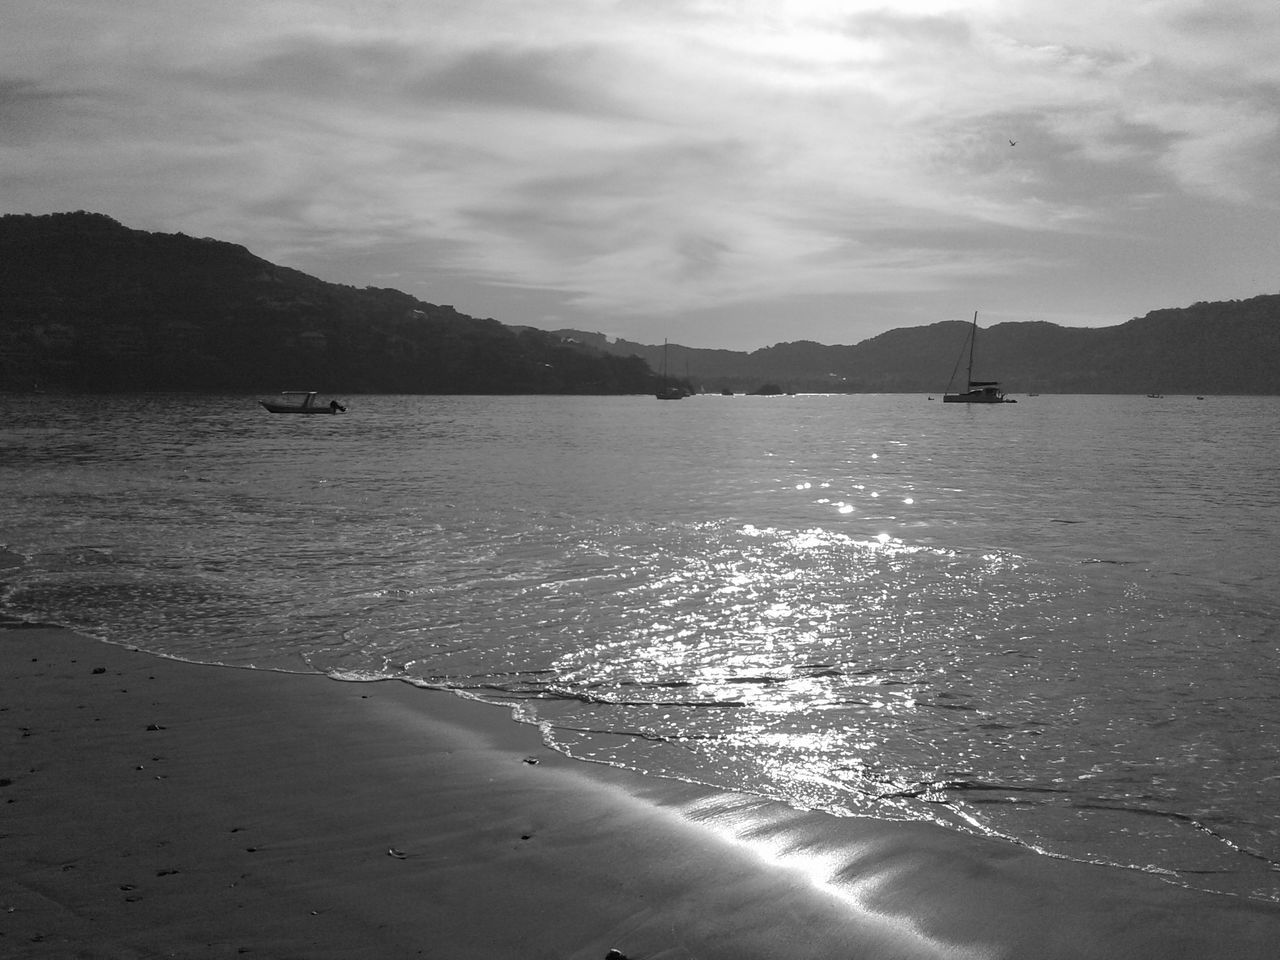 water, sea, mountain, sky, nature, scenics, beauty in nature, no people, tranquility, outdoors, cloud - sky, sunlight, beach, day